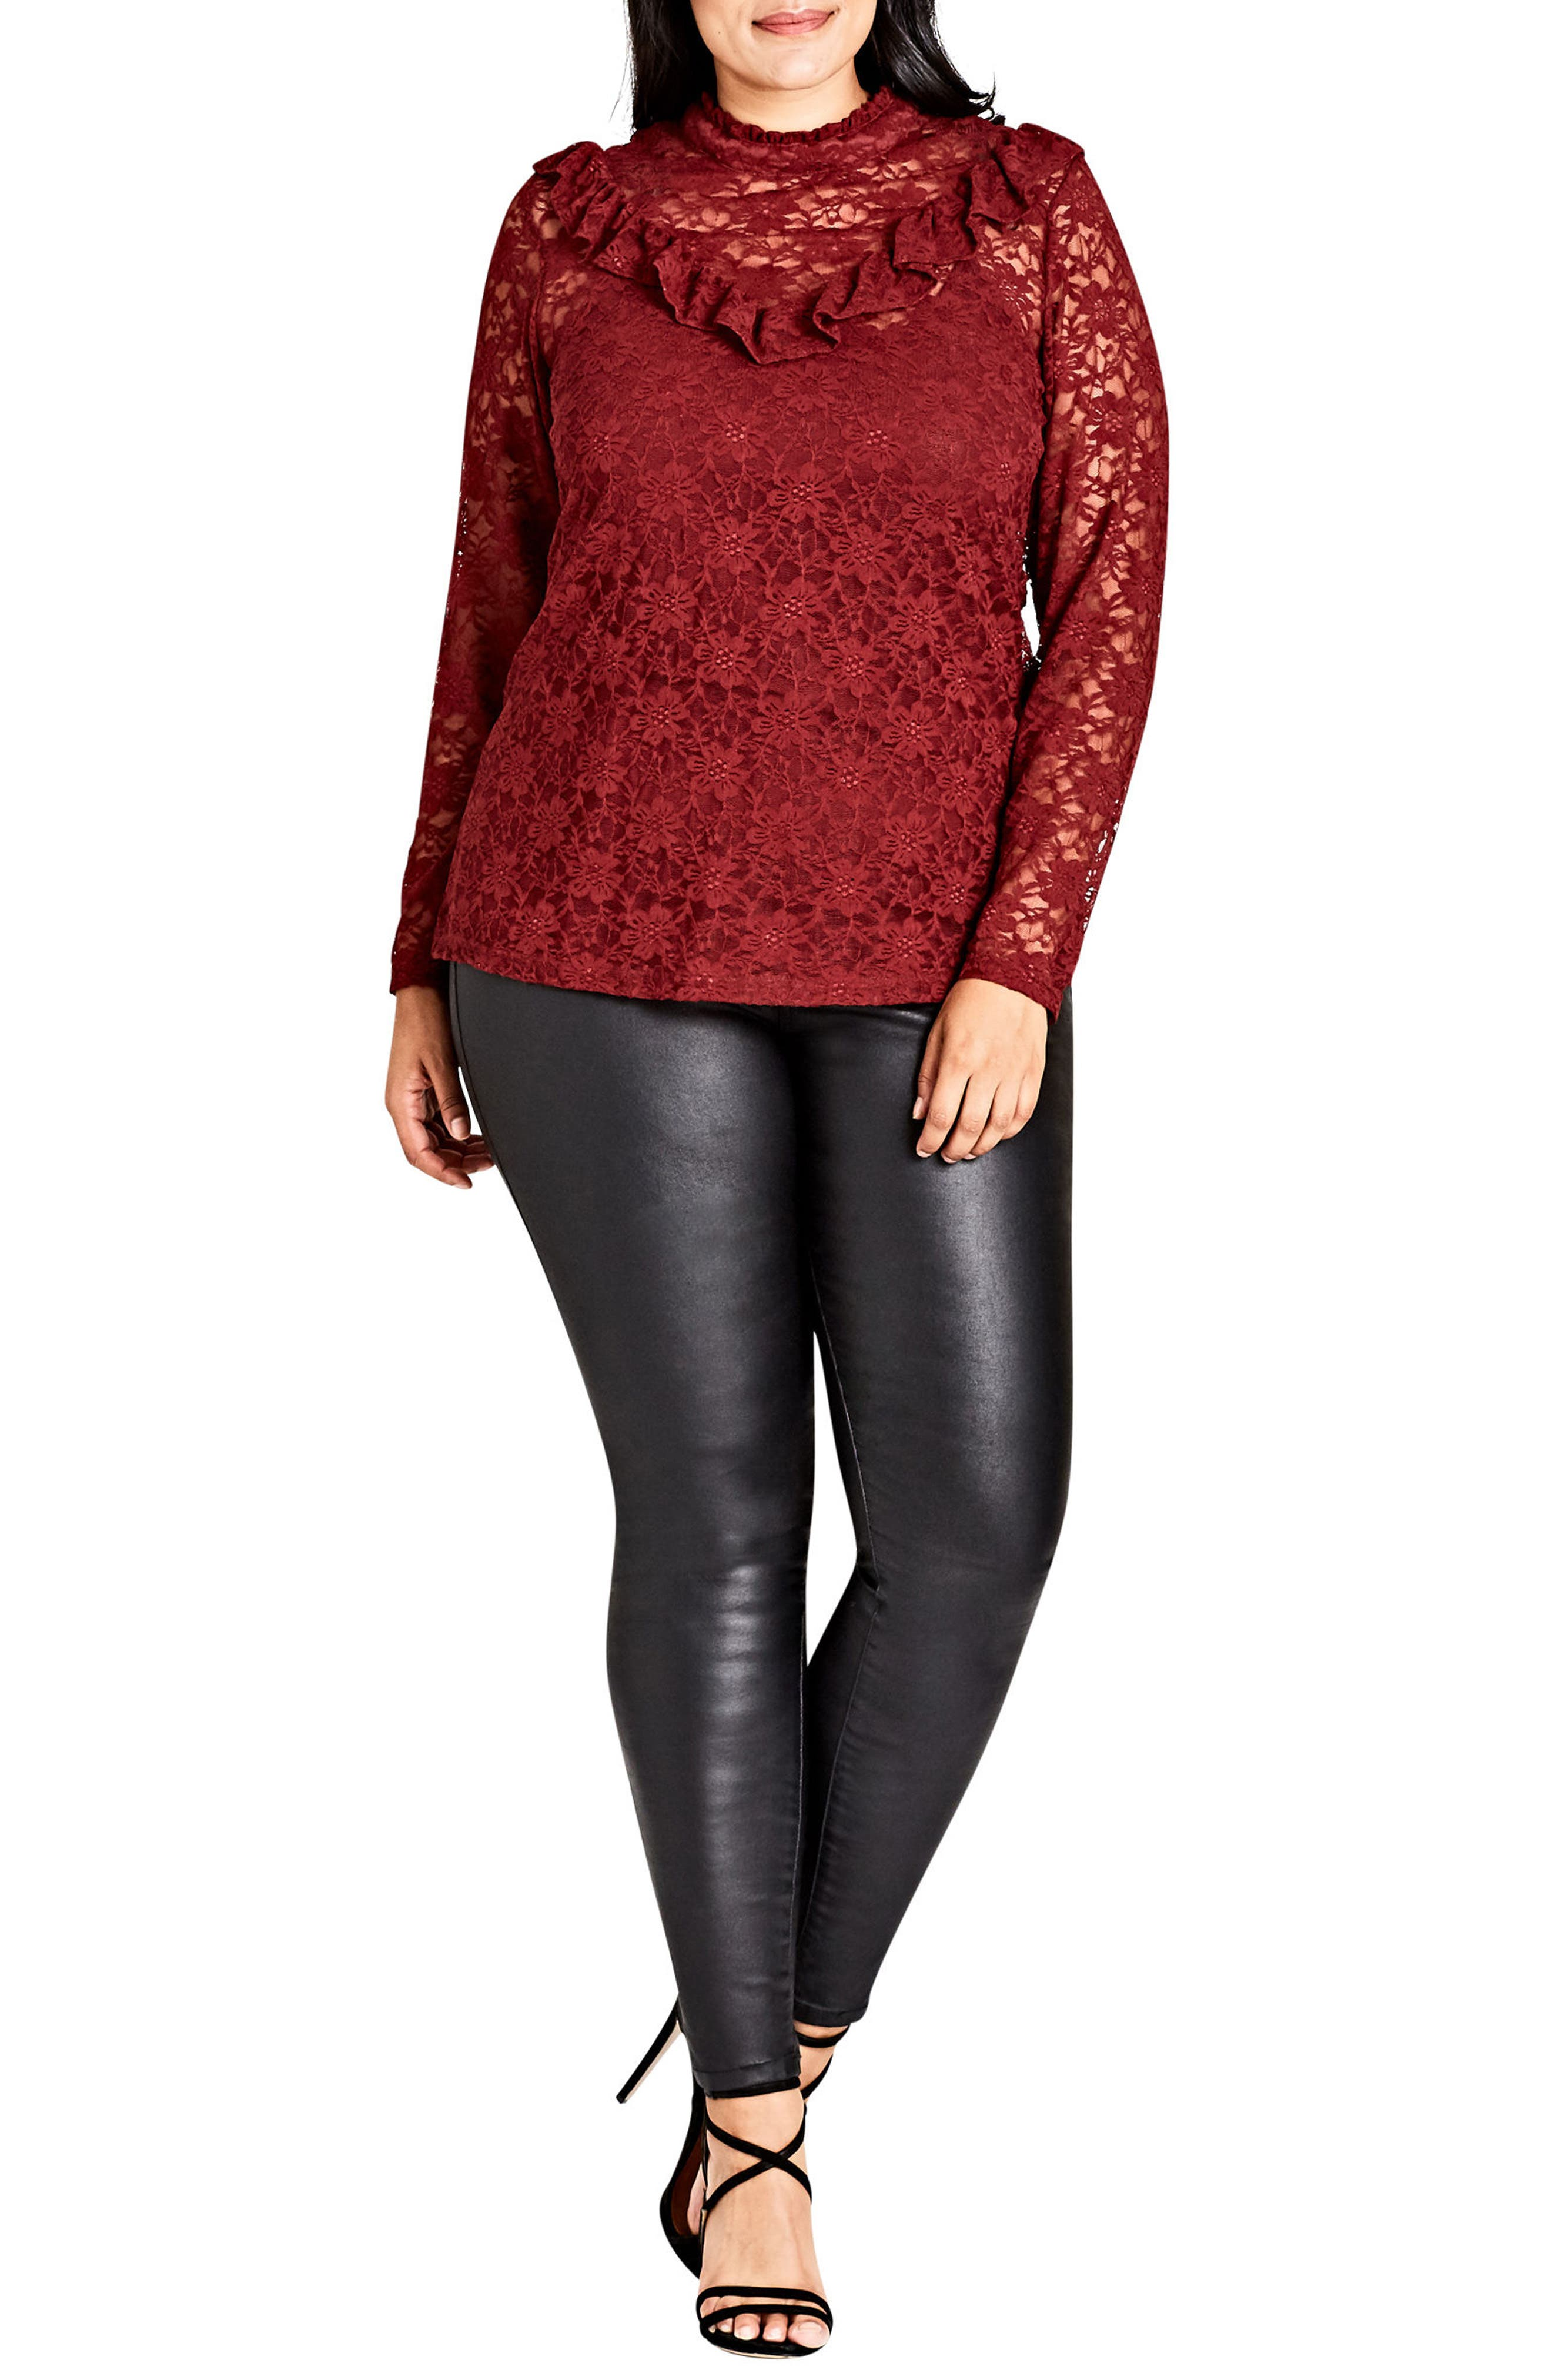 Alternate Image 1 Selected - City Chic Victorian Lace Top (Plus Size)